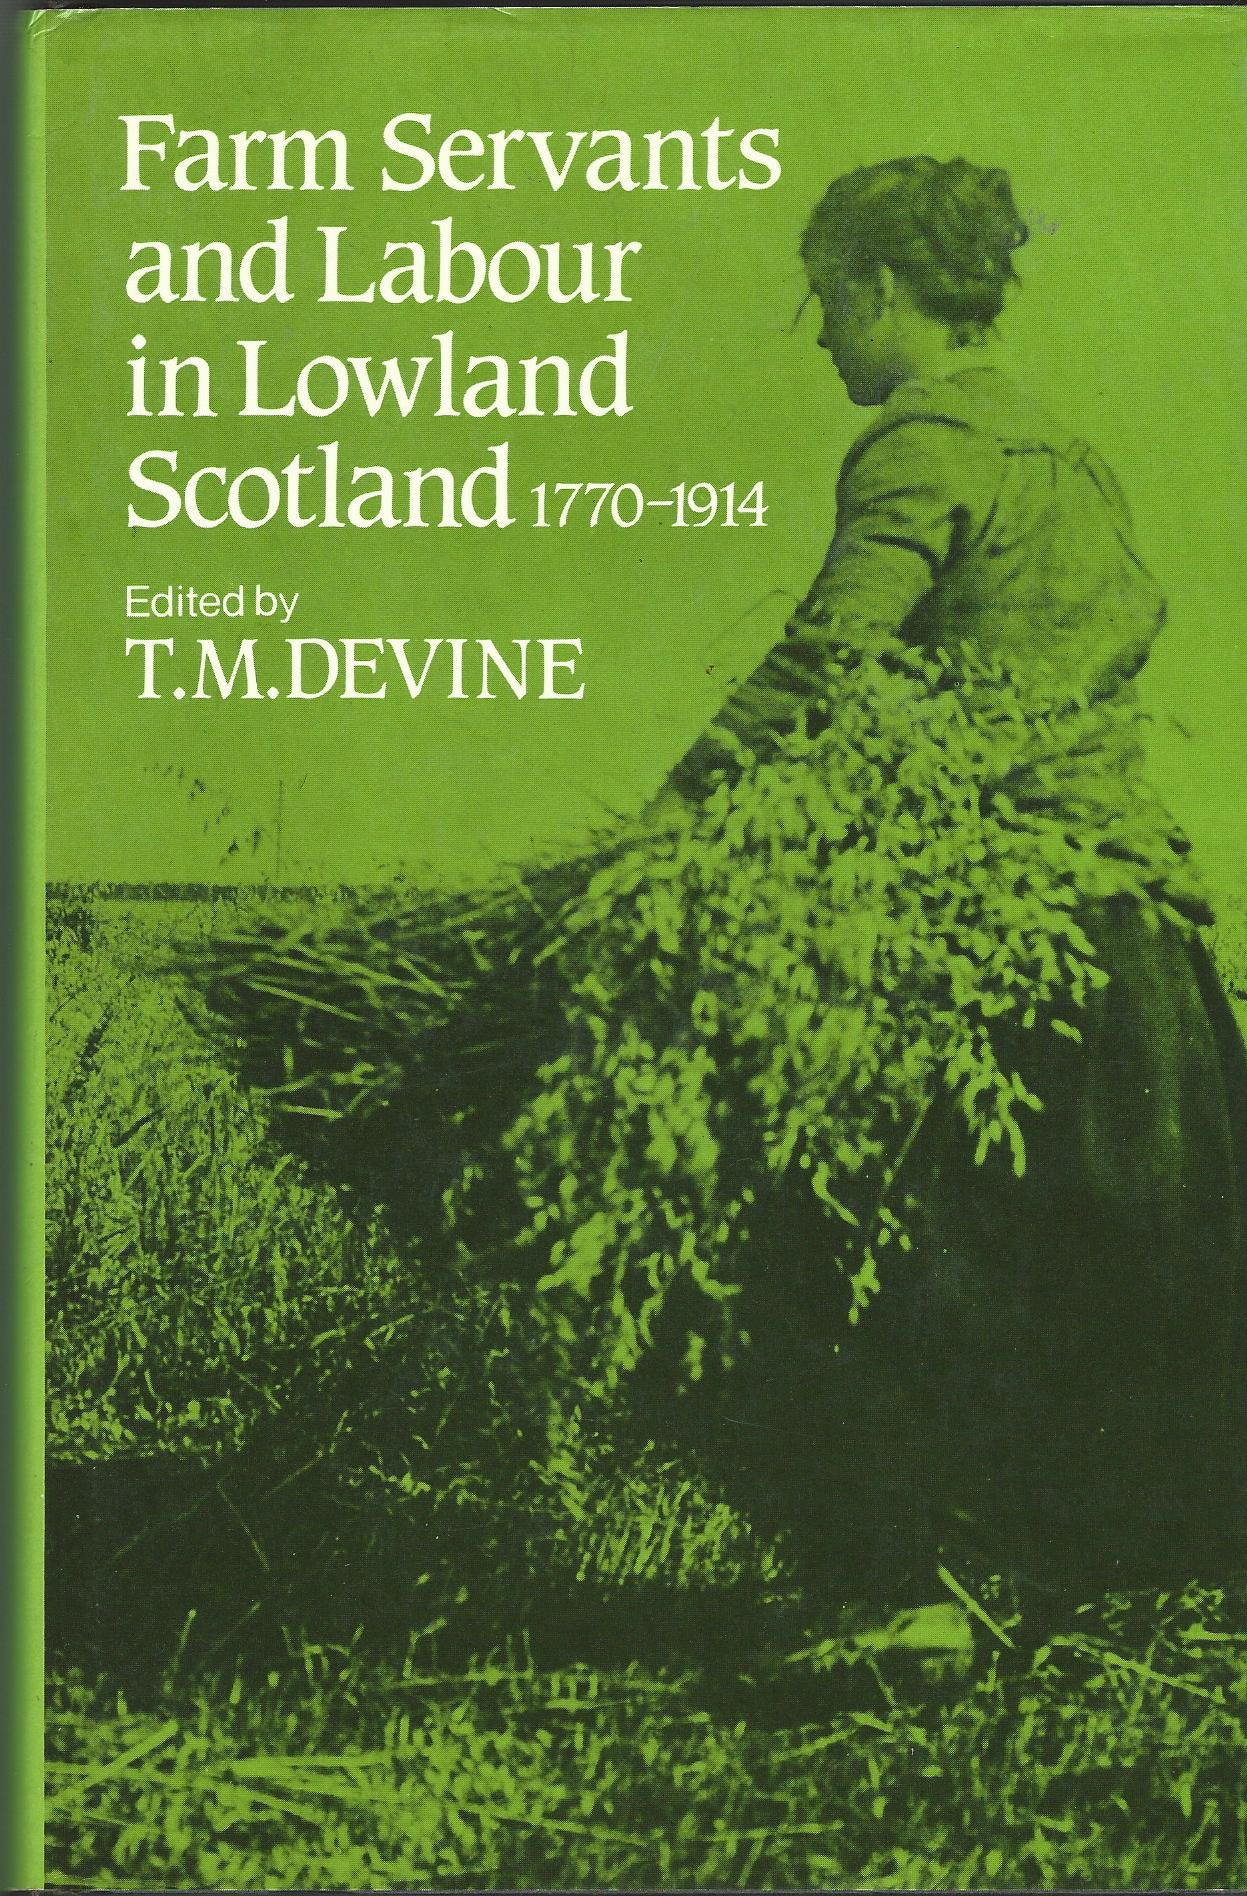 Image for Farm Servants and Labour in Lowland Scotland, 1770-1914.